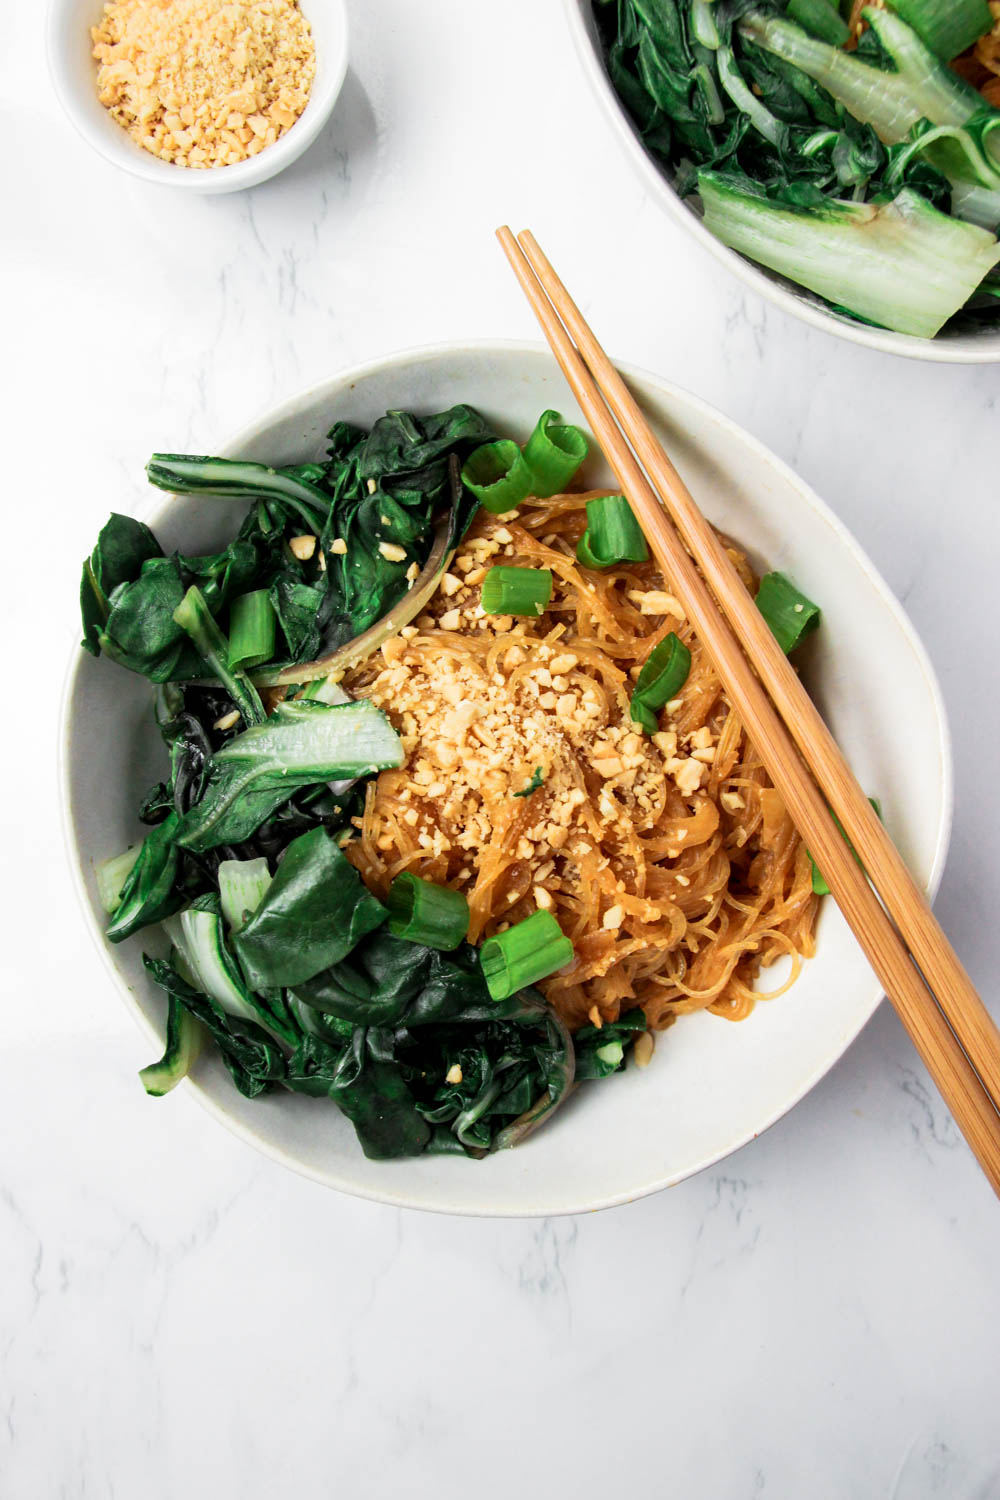 Spicy Peanut Thai Noodles topped with spring onions and peanuts and pak choi on the side